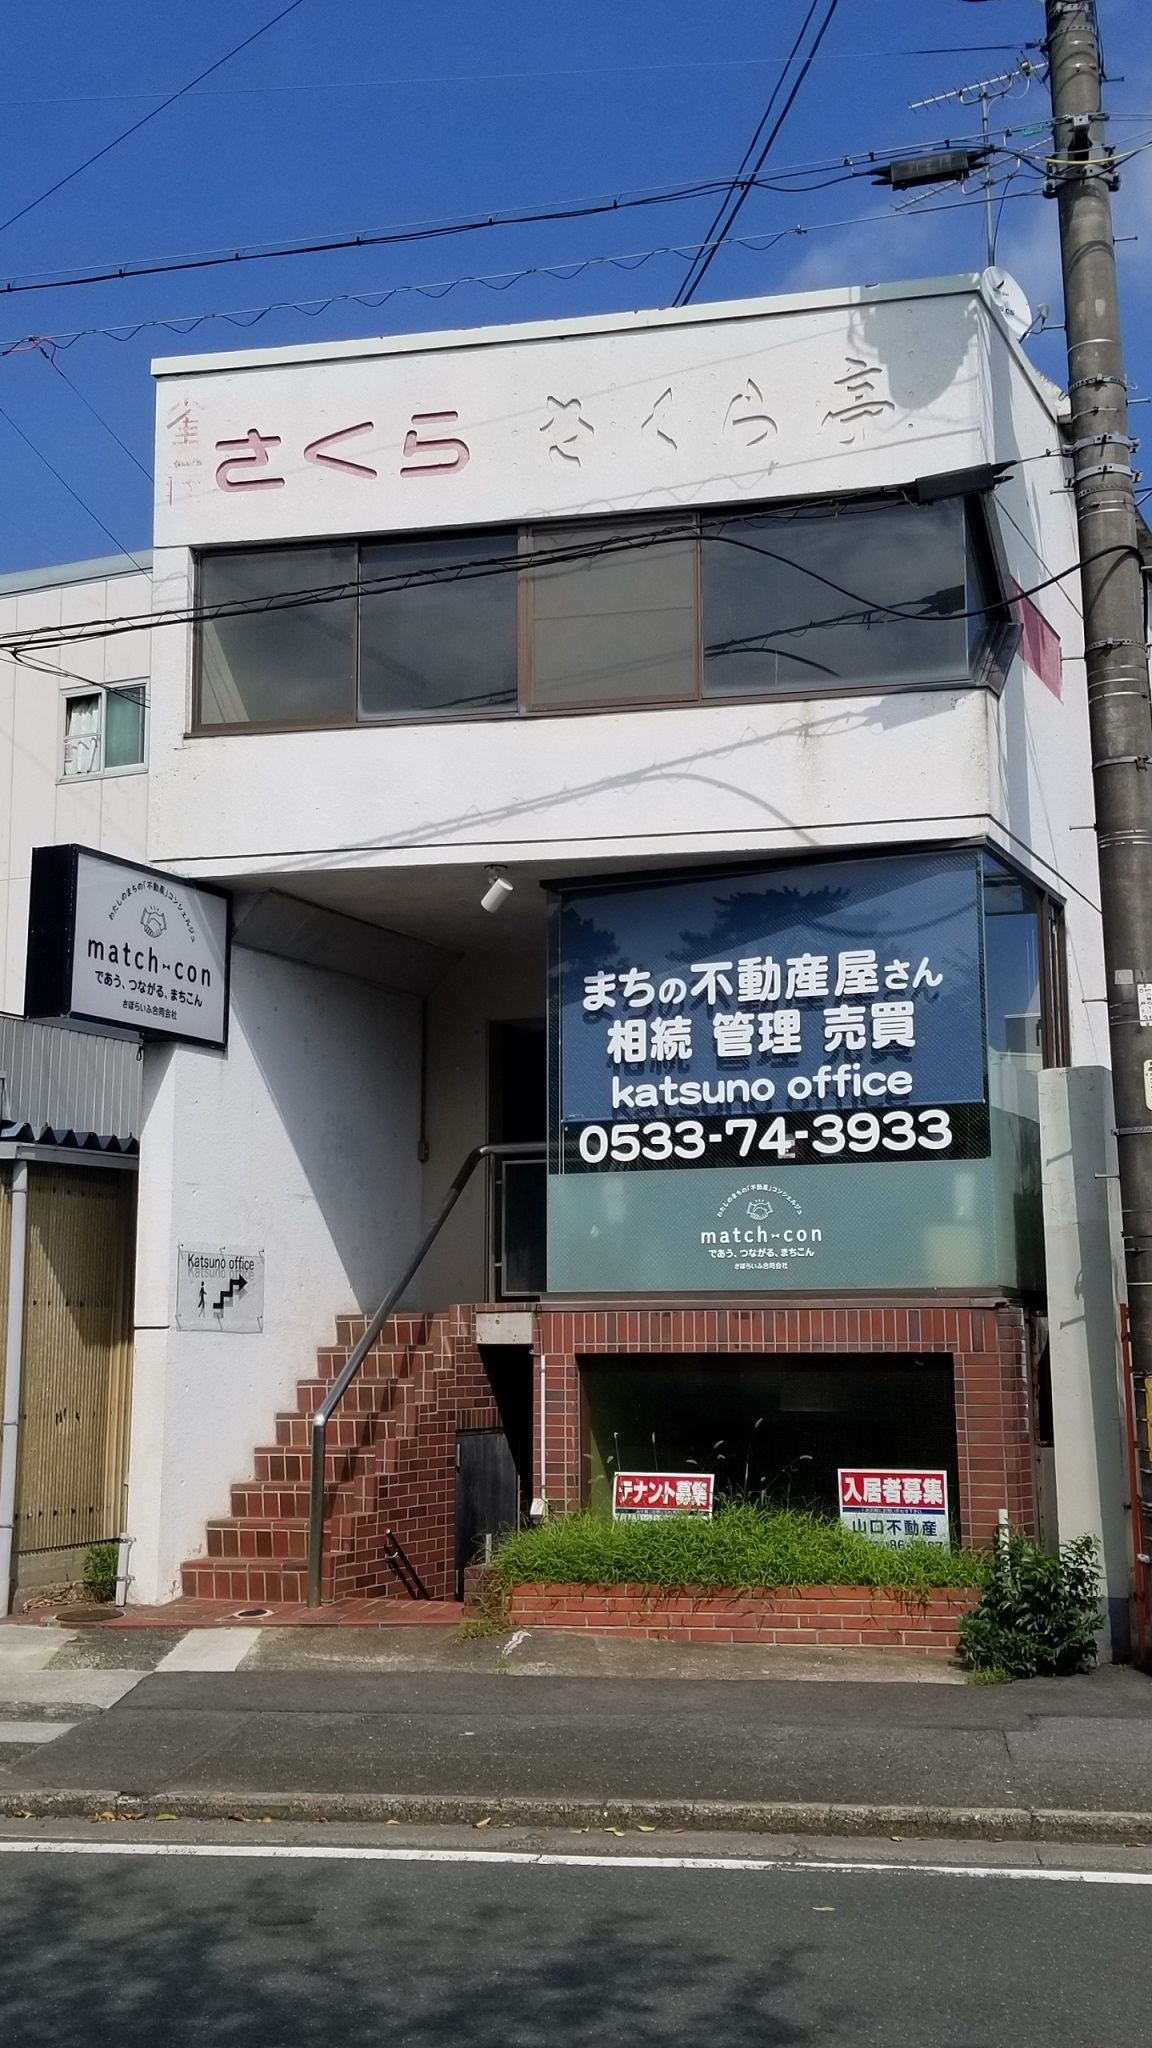 KATSUNO OFFICE